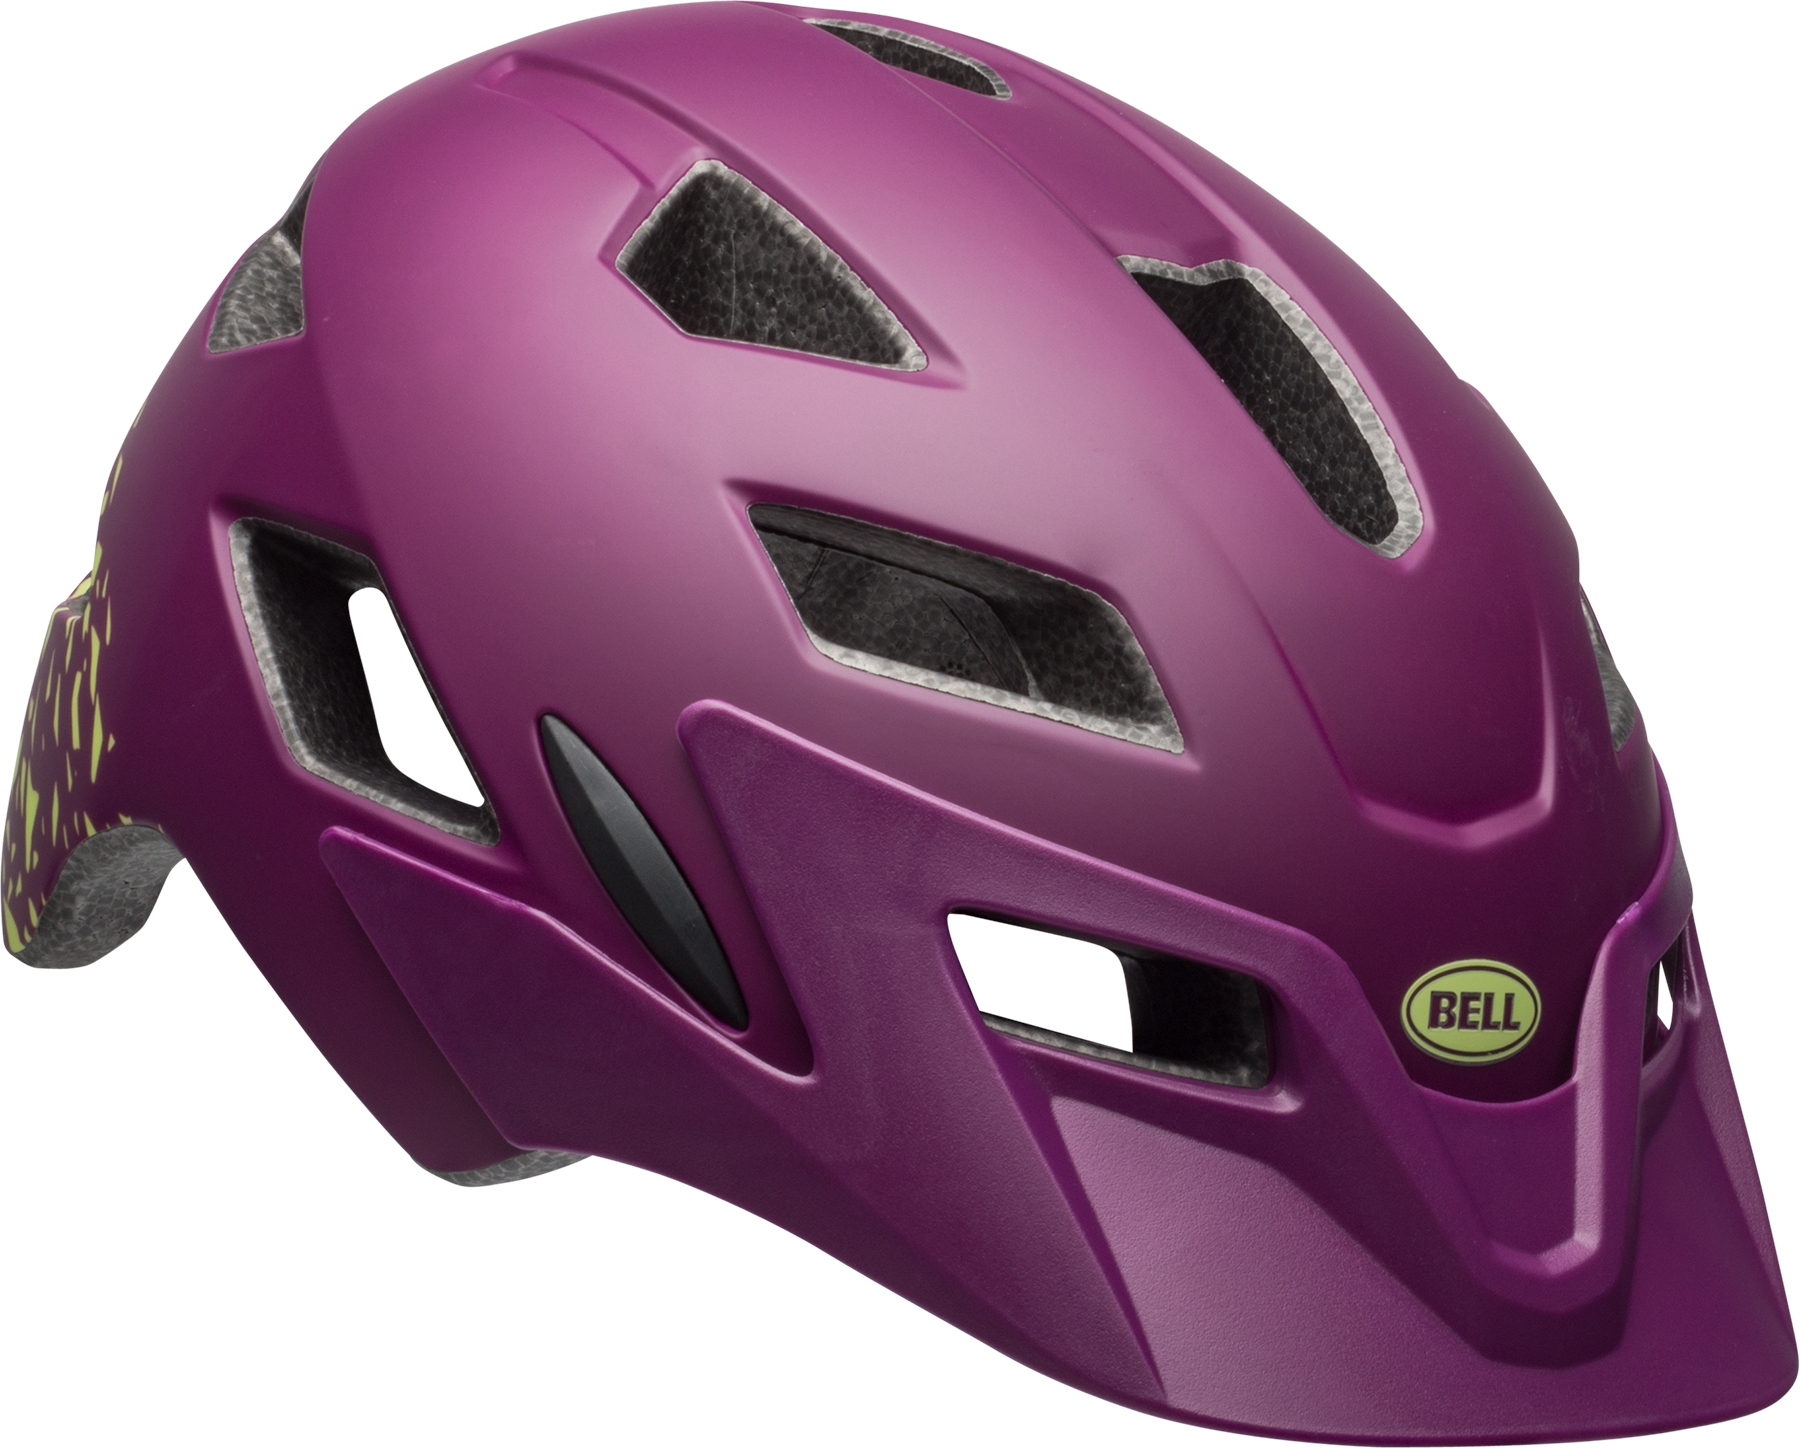 Casque enfant Bell SIDETRACK CHILD Plum mat/Pear